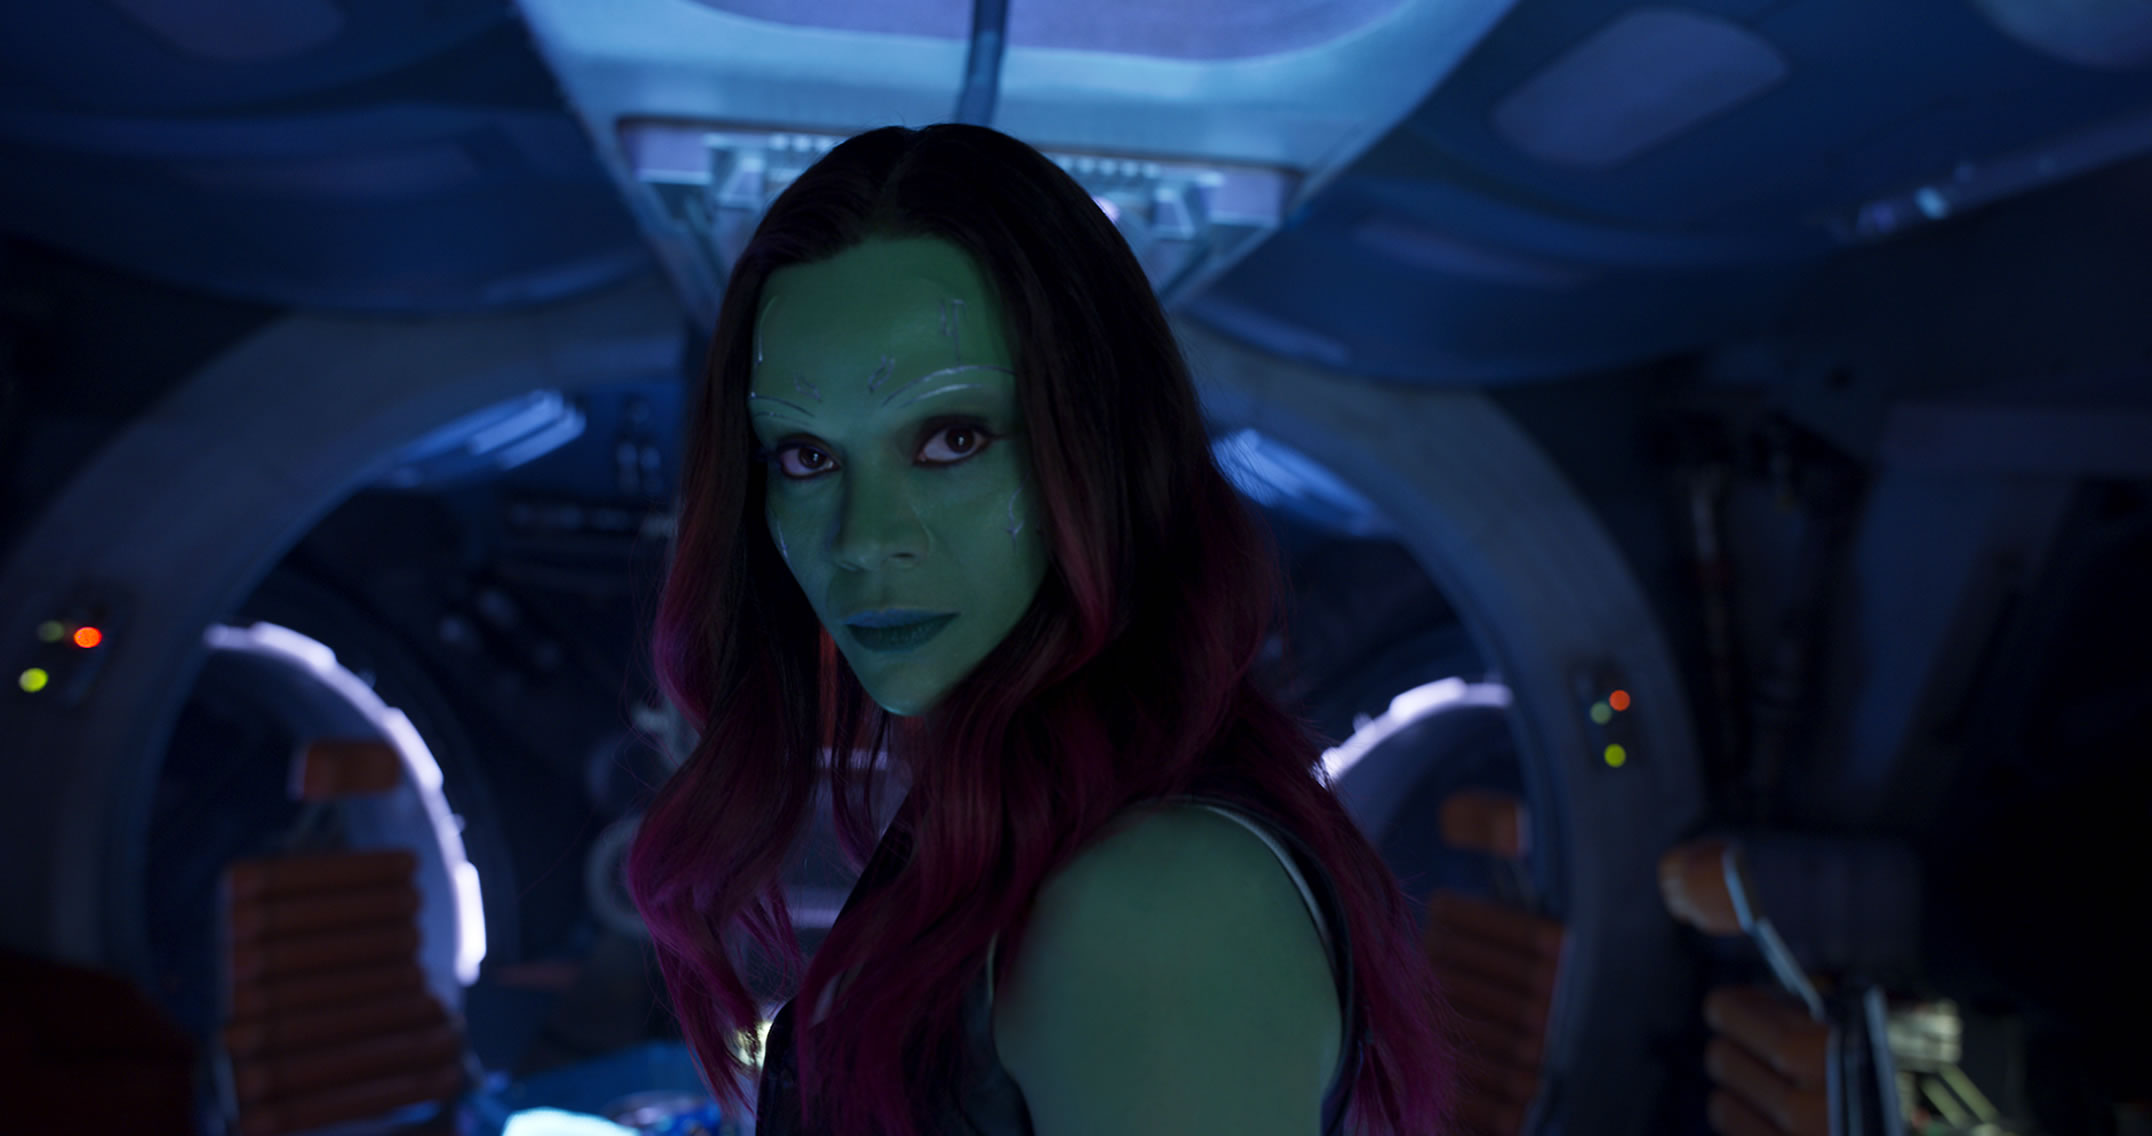 guardians of the galaxy 2 2017 full movie download english